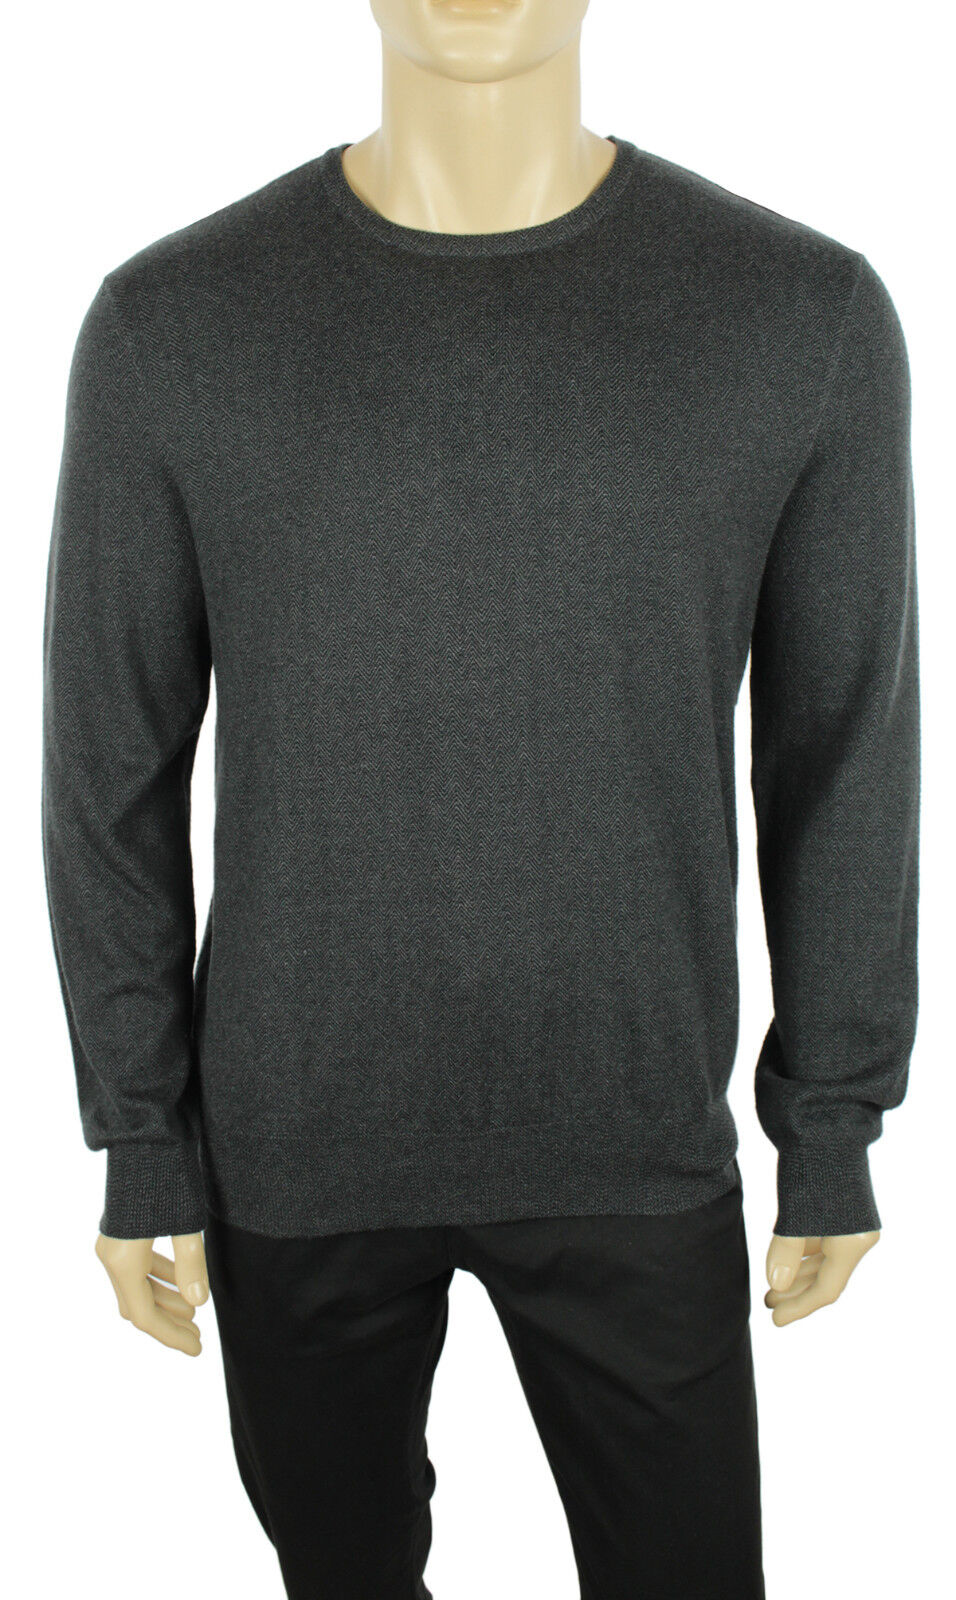 NEW POLO RALPH LAUREN HERRINGBONE grau COTTON CASHMERE PULLOVER SWEATER 245